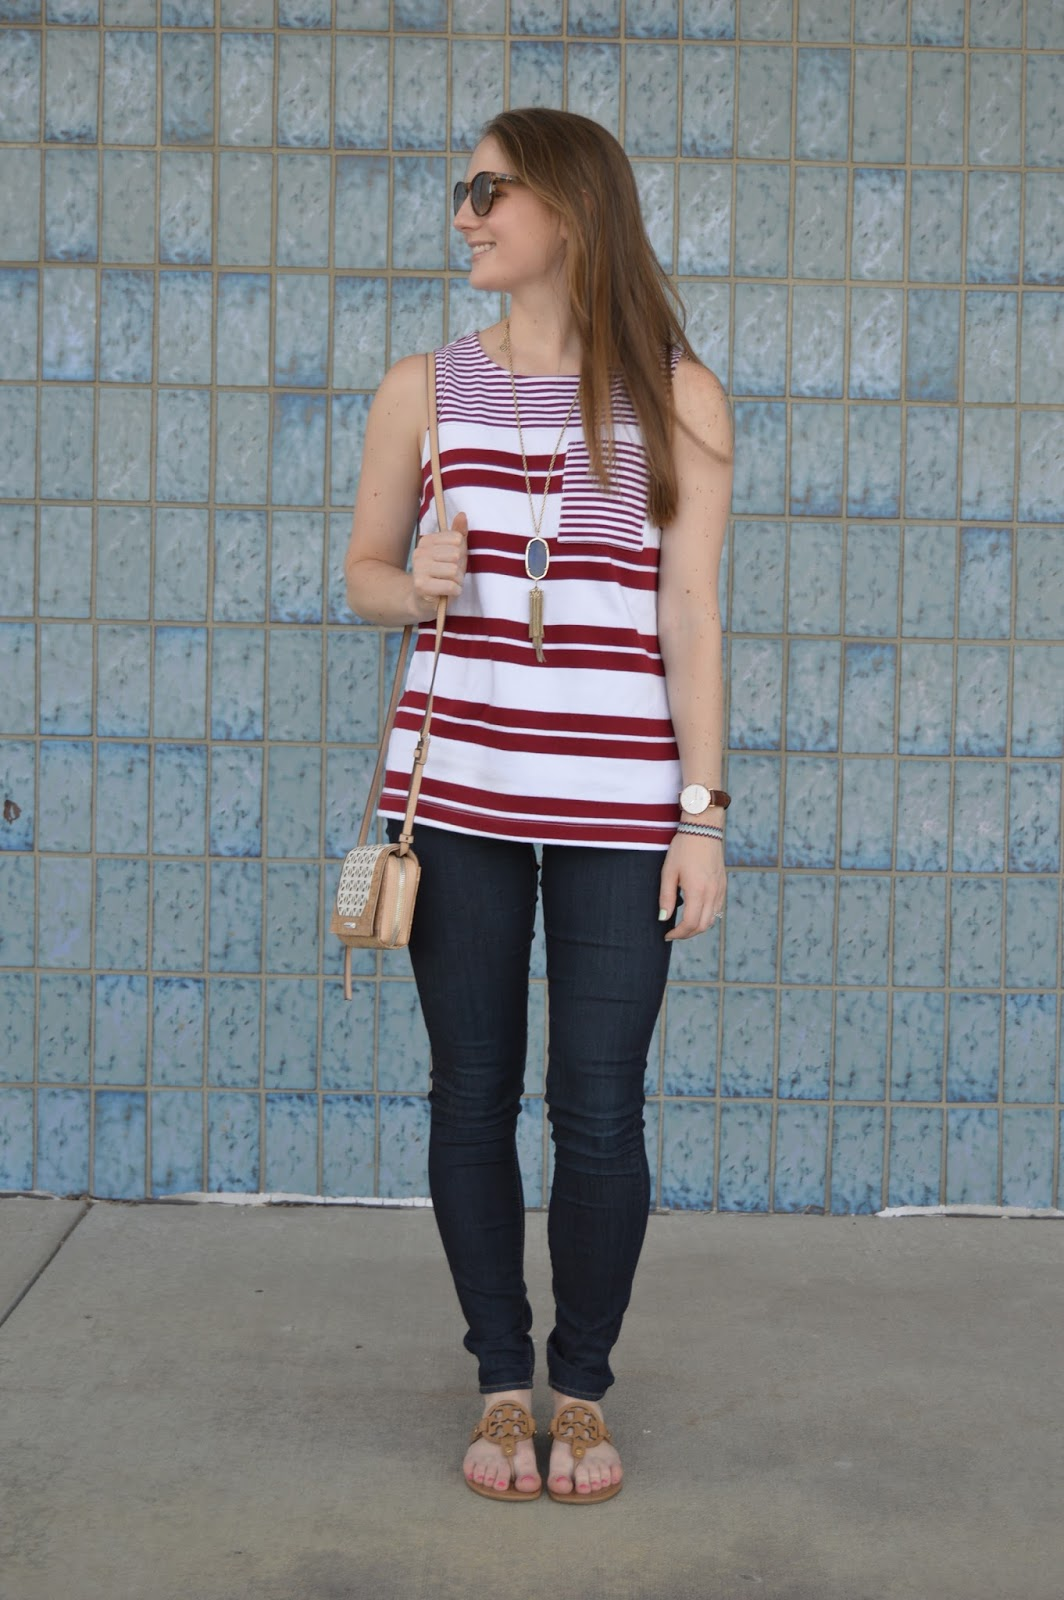 cute outfit ideas for summer | what to wear for the fourth of july | fourth of july outfit inspo | summer outfit ideas | a memory of us | red and white striped tank top |